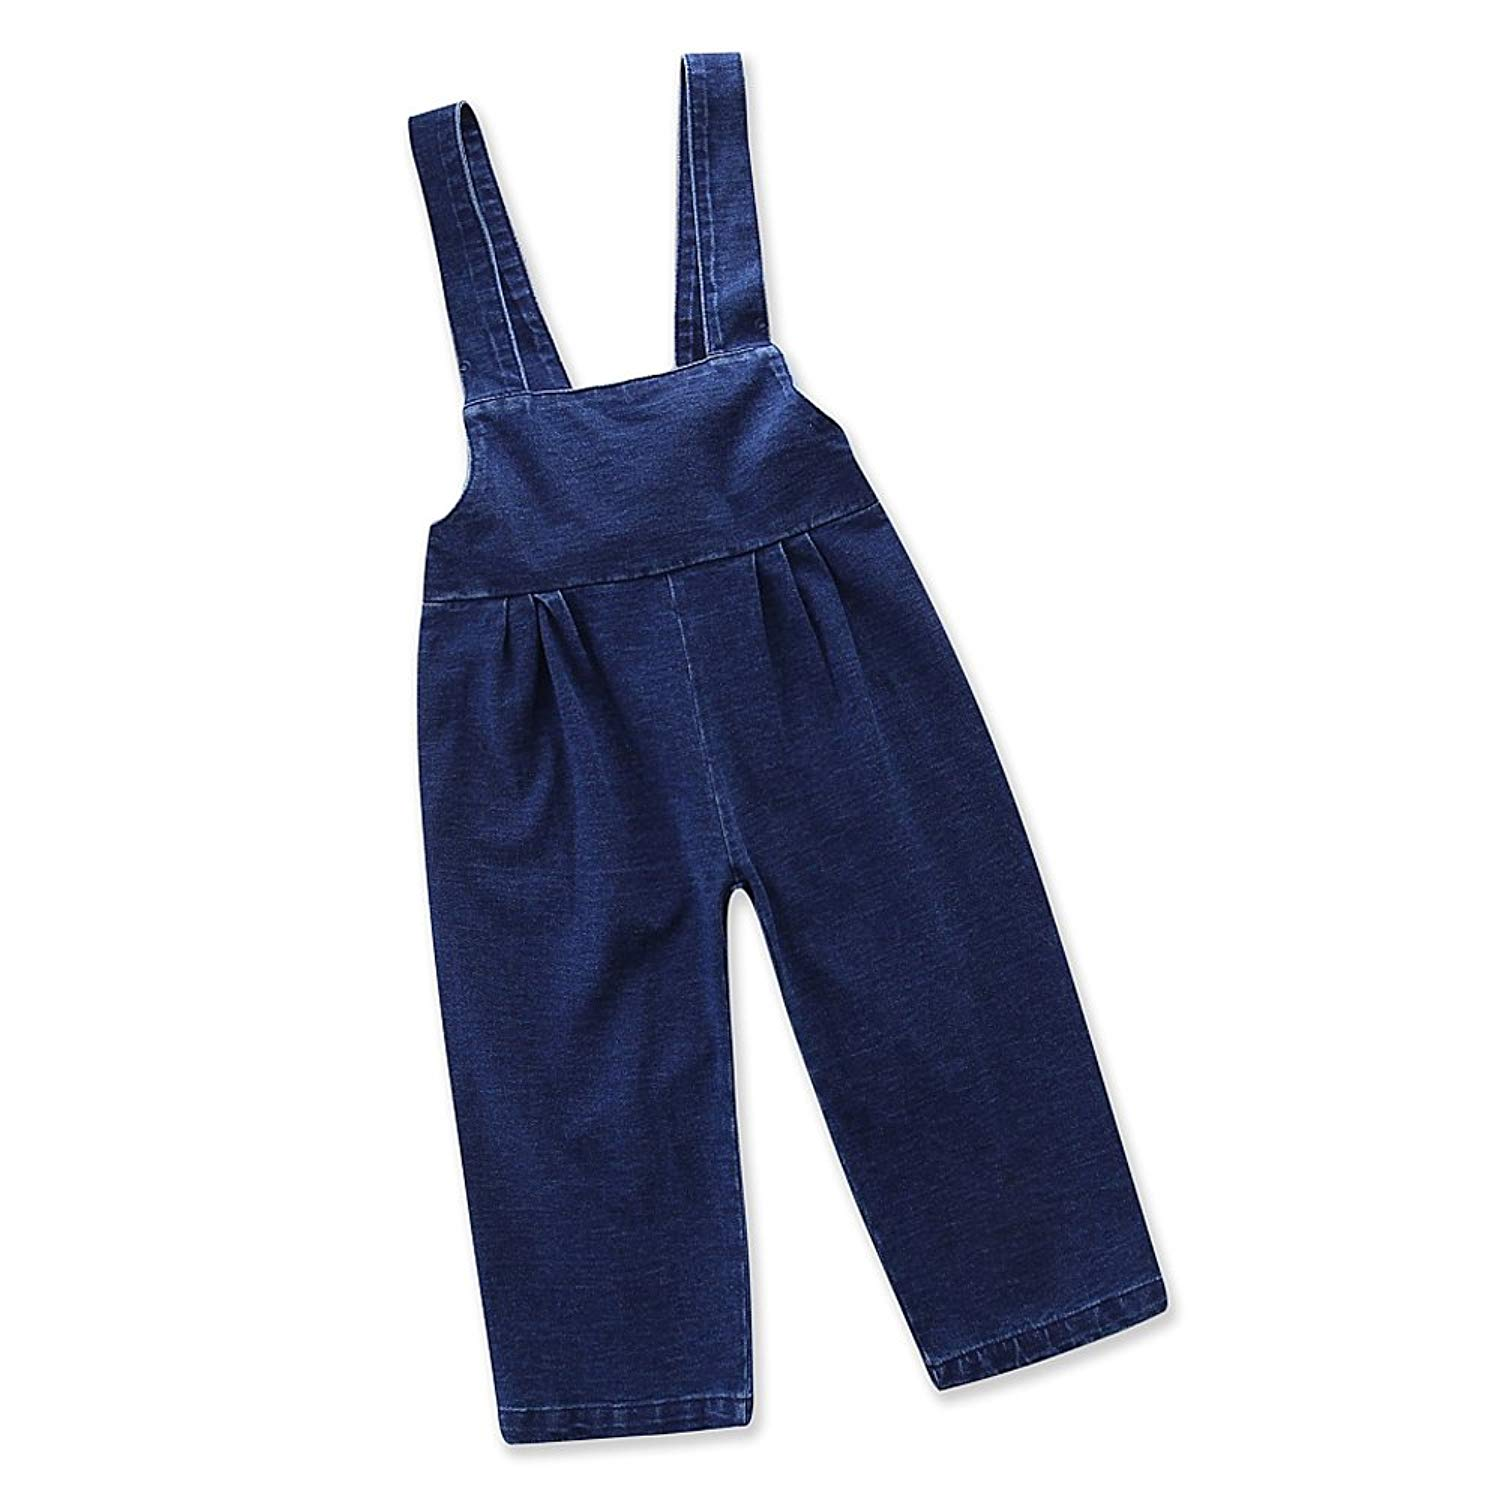 Samgami Baby Girls Daily Clothes Denim Suspenders Baby Infants Toddlers Jumpsuit Kids Jeans Clothing